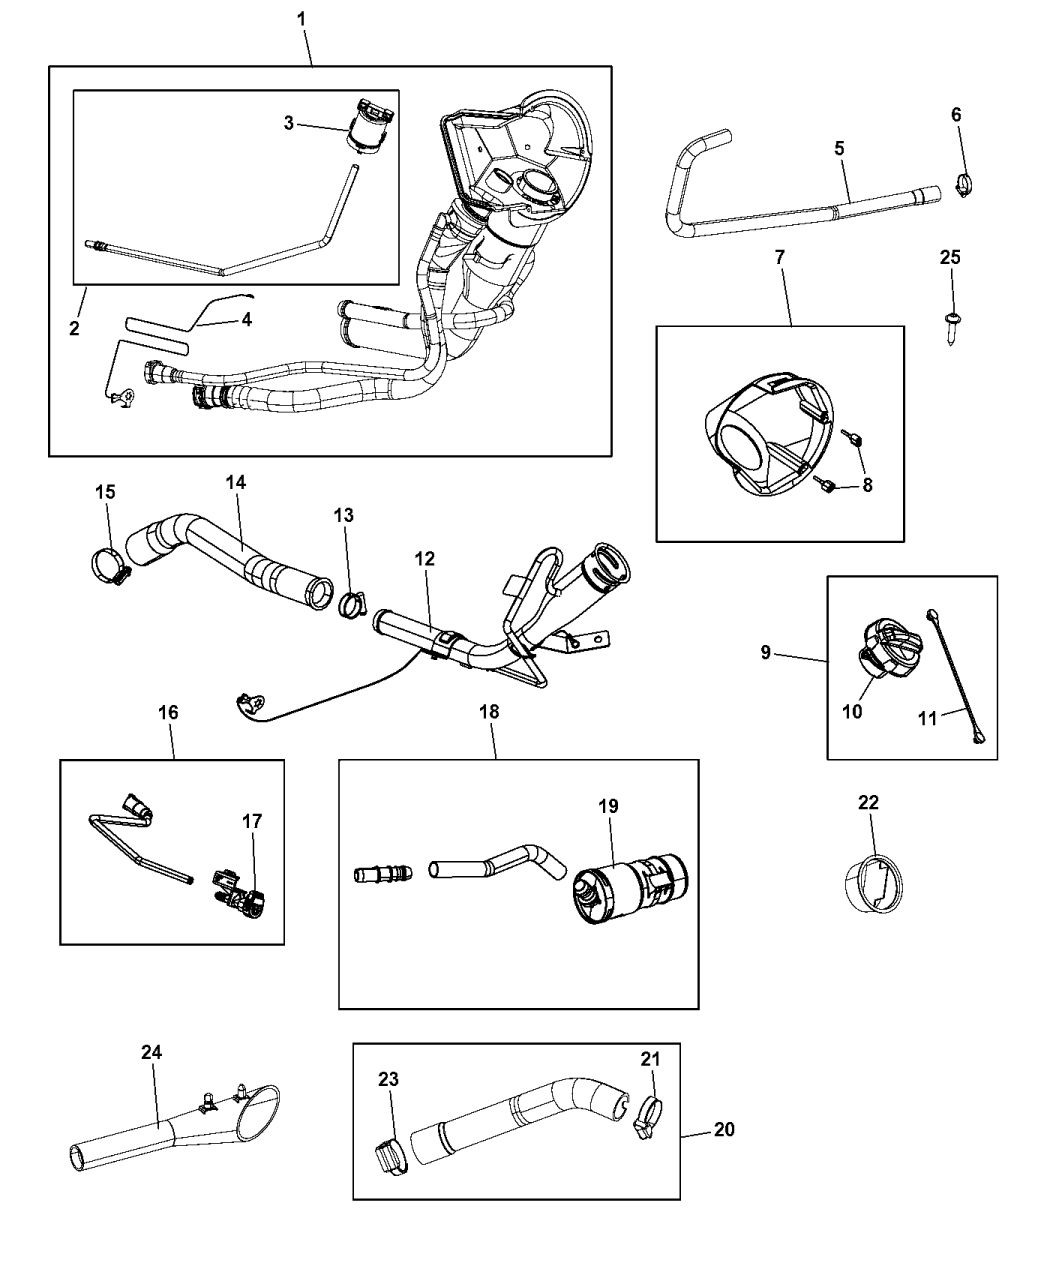 dodge ram 1500 fuel system diagram 52030379ab genuine mopar cap fuel filler  52030379ab genuine mopar cap fuel filler